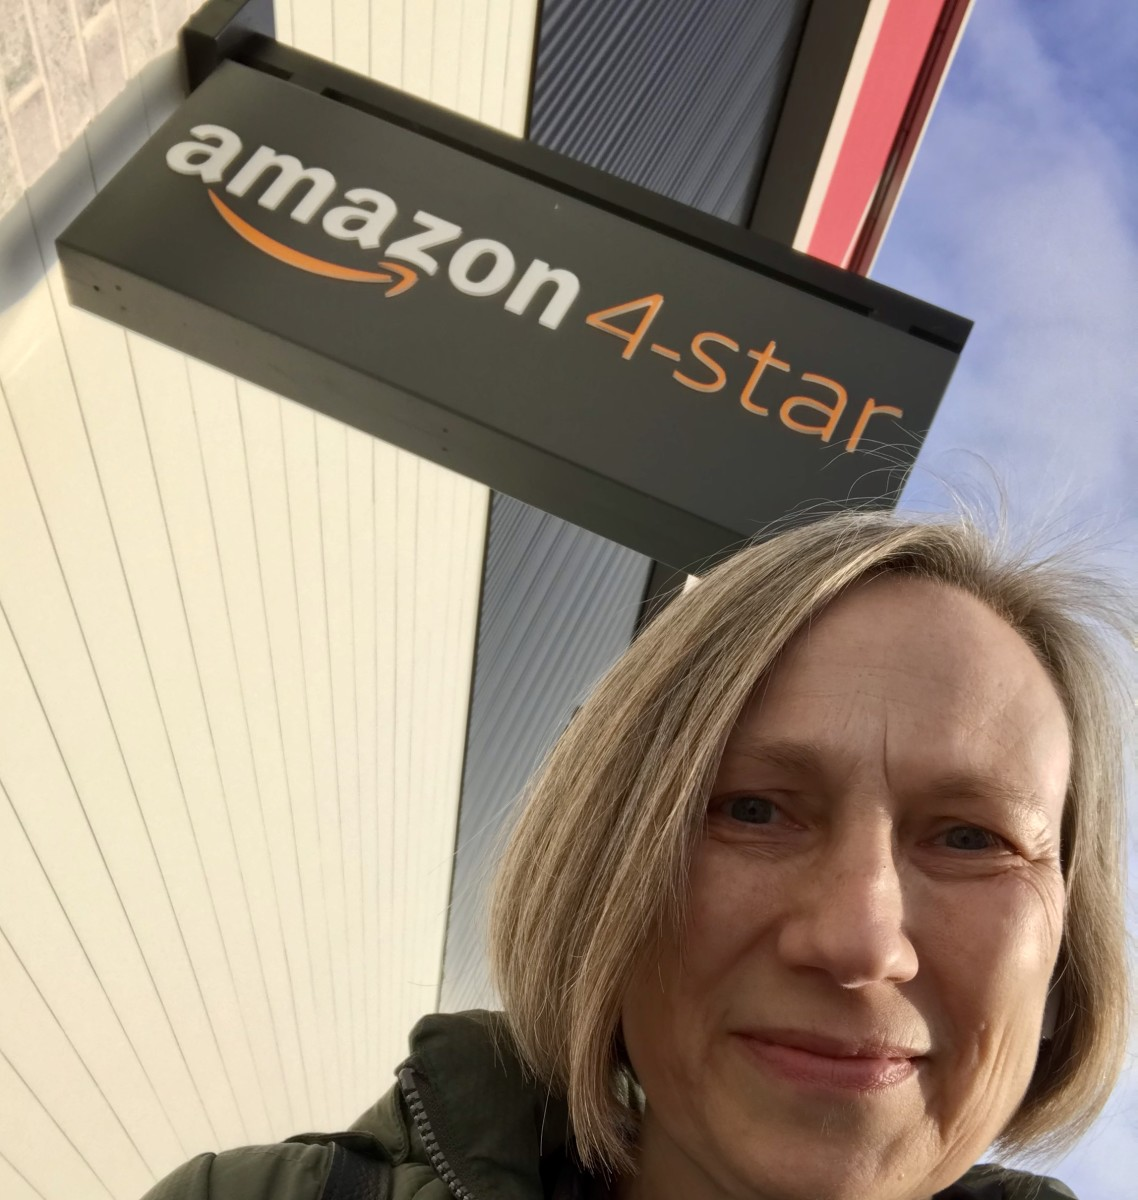 Why A 4-Star Review on Amazon Isn't Bad